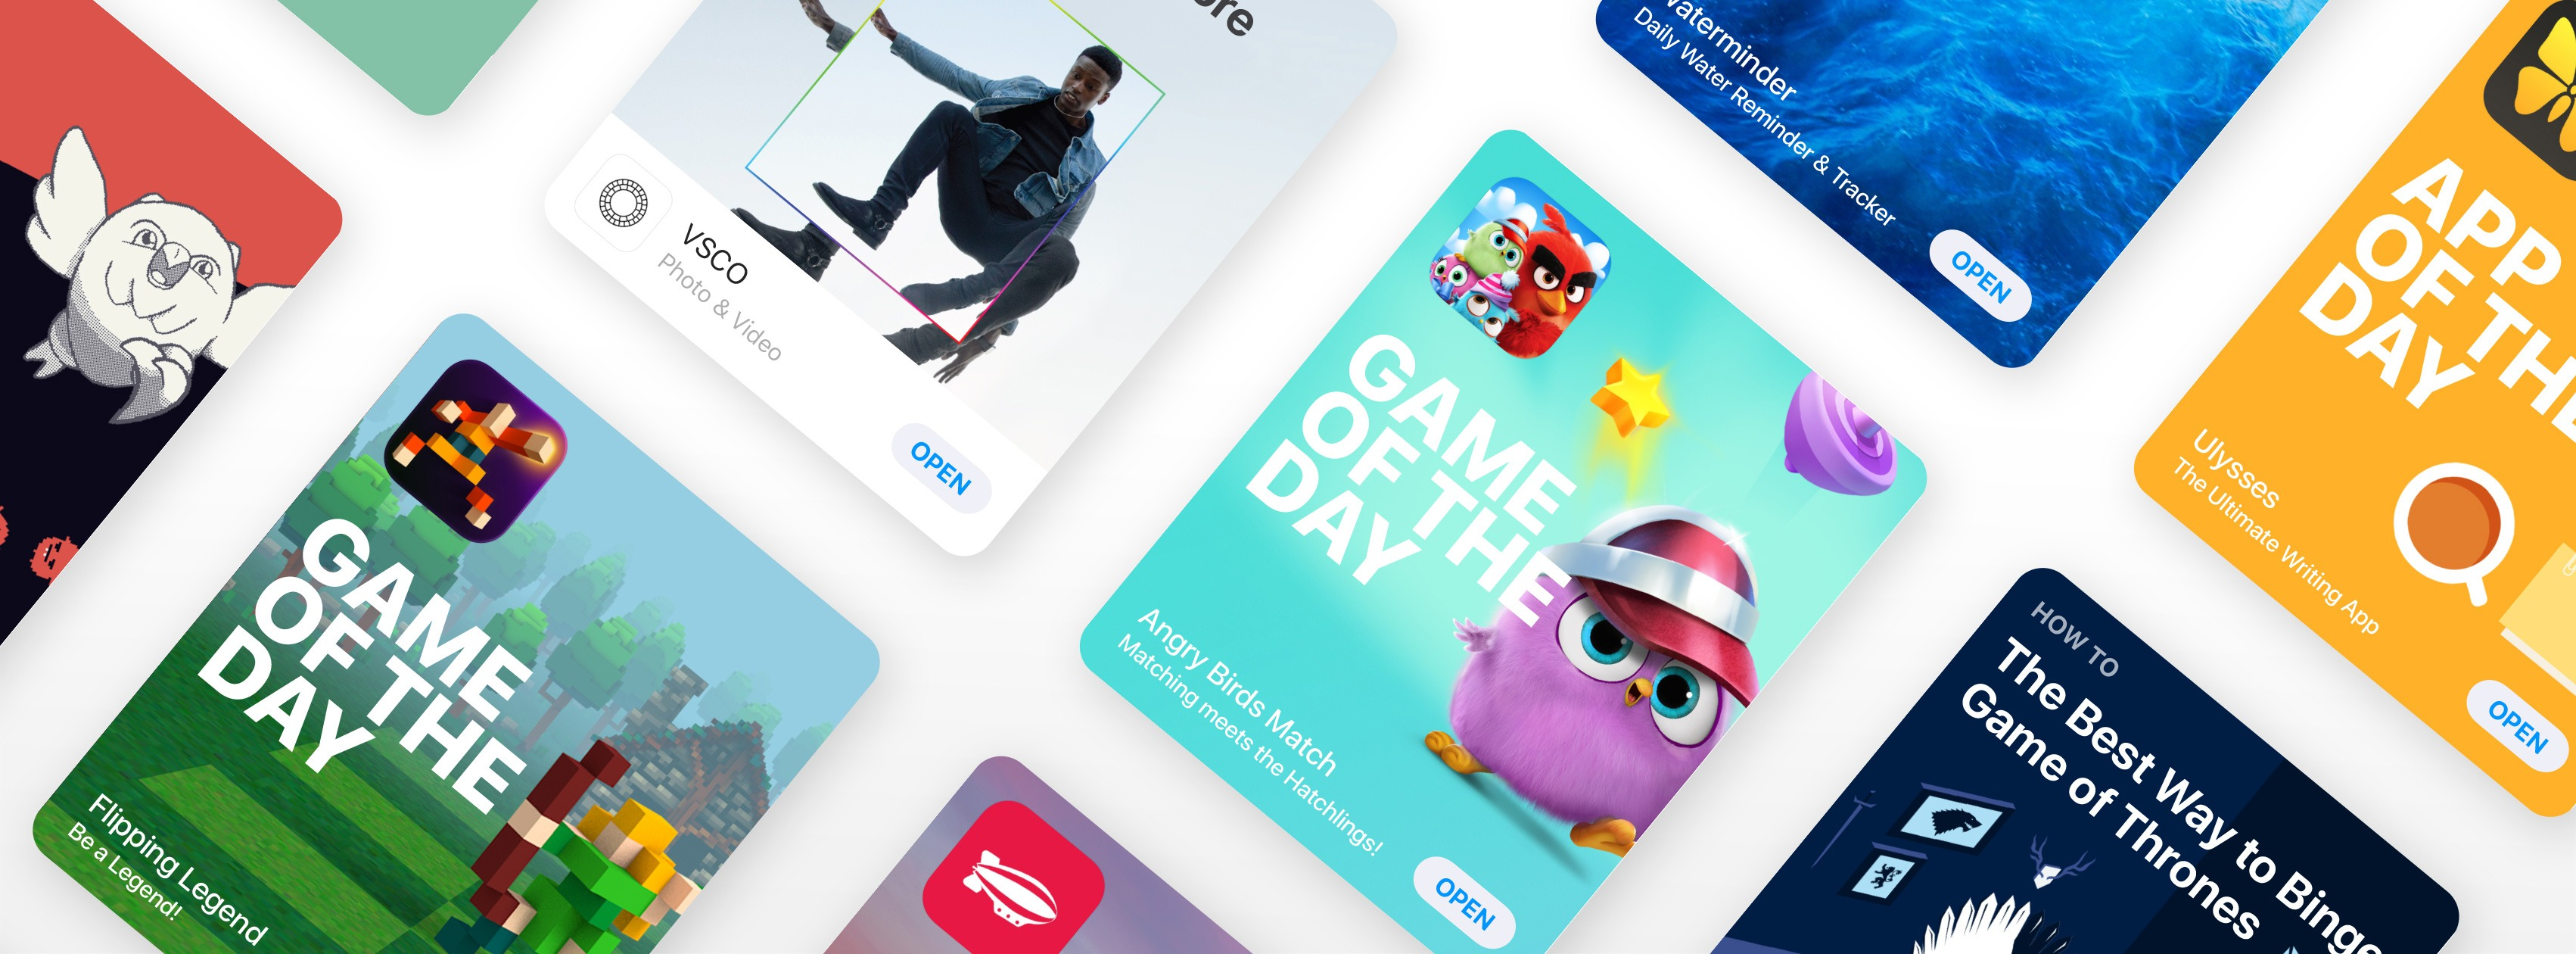 photo image Apple Announces Record Holiday App Store Sales